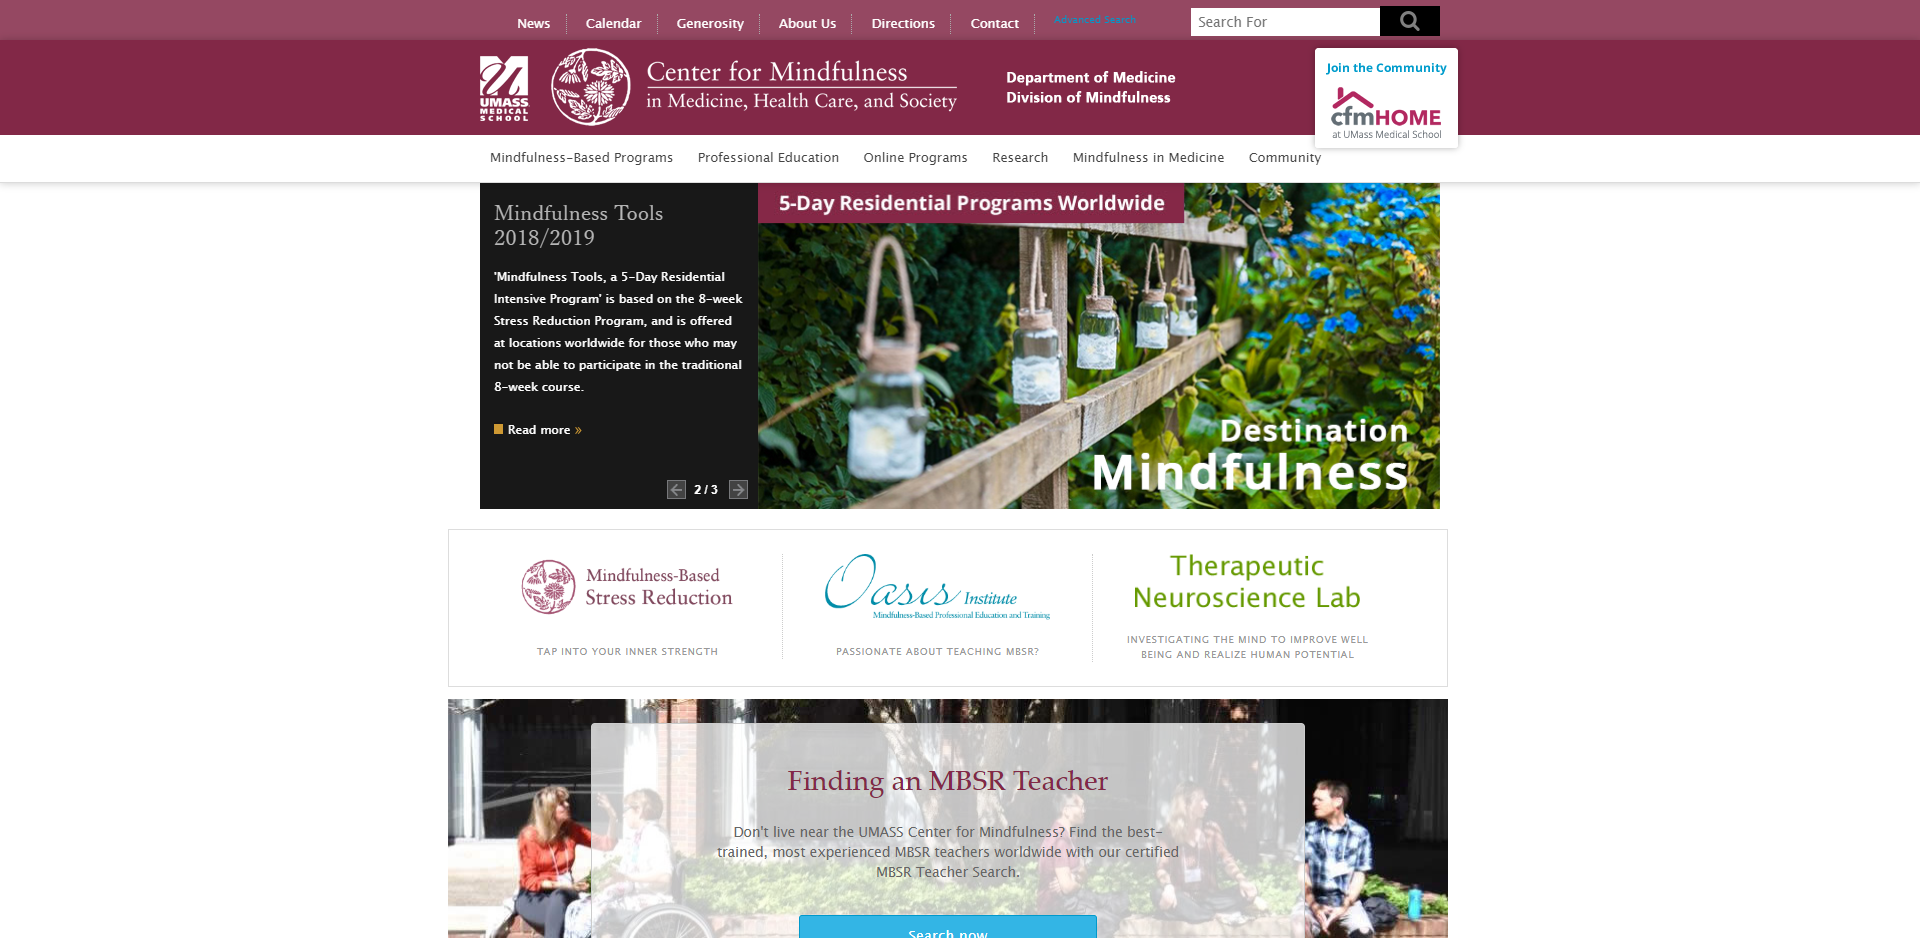 Center for Mindfulness in Medicine